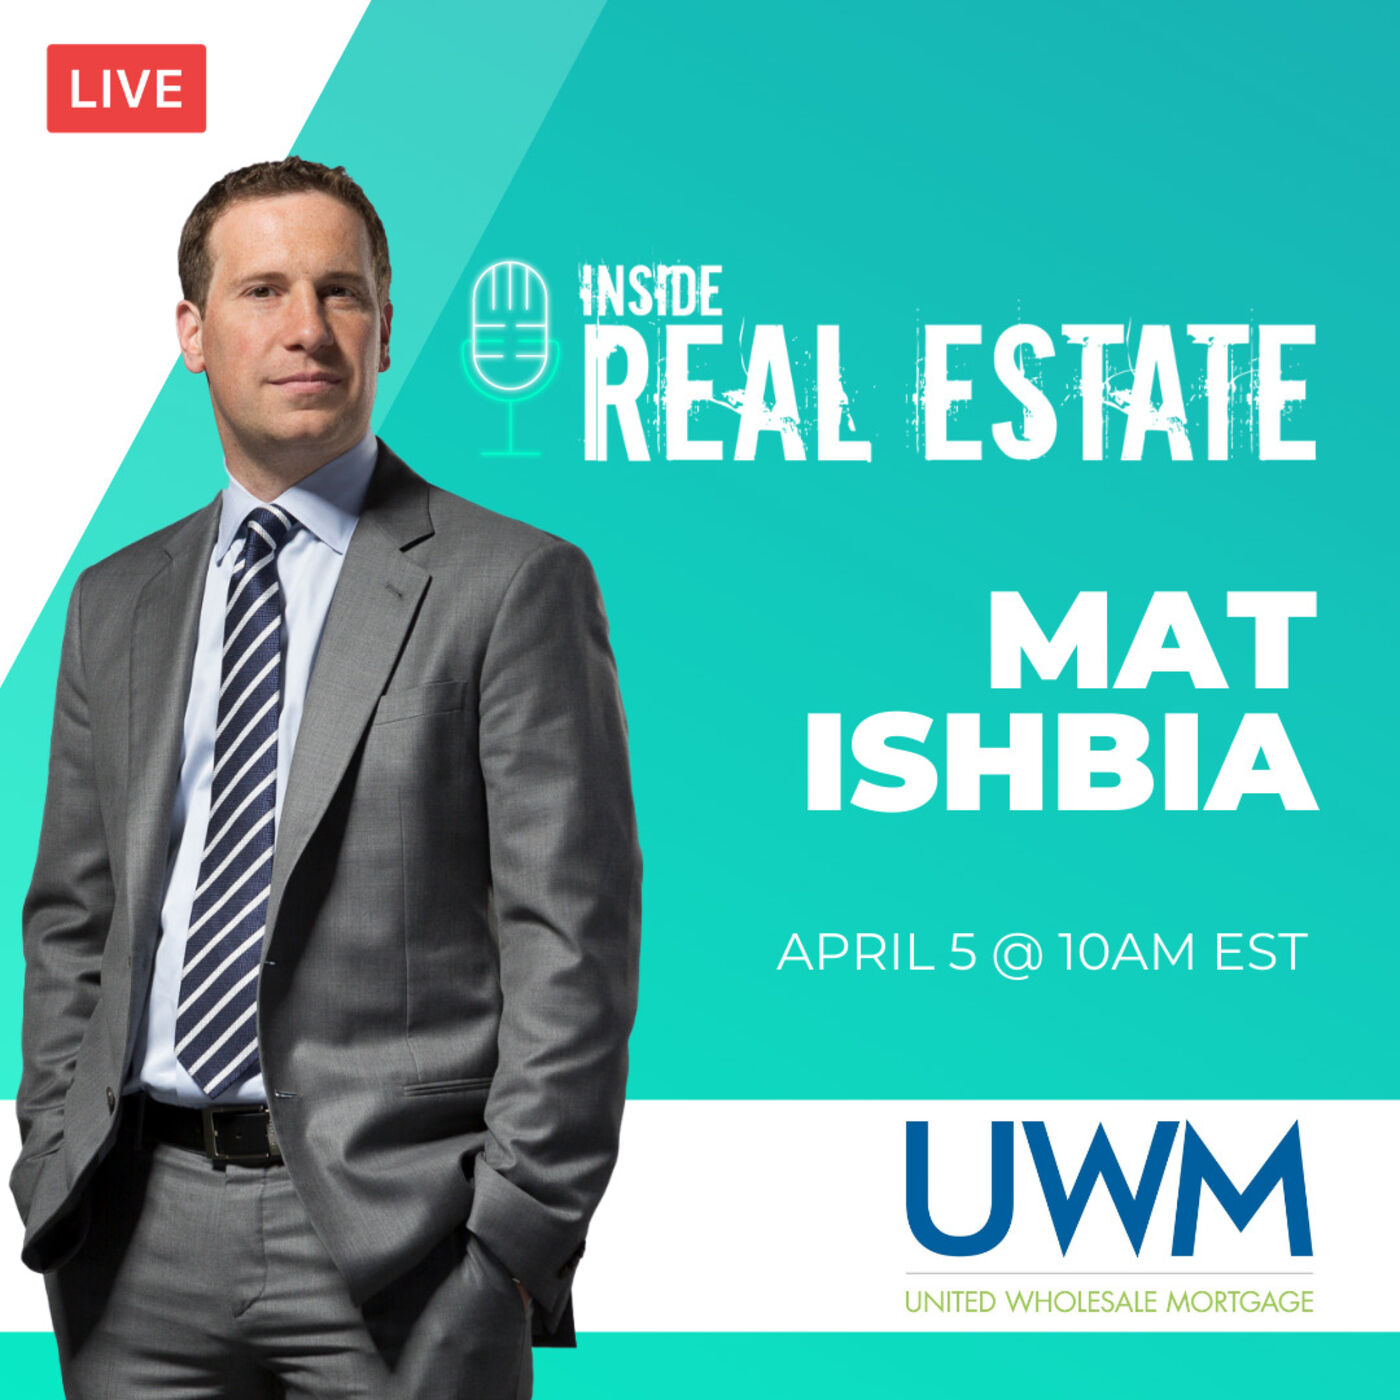 Mat Ishbia, UWM - Business Philosophy, Mat's Perspective, and Recent Events